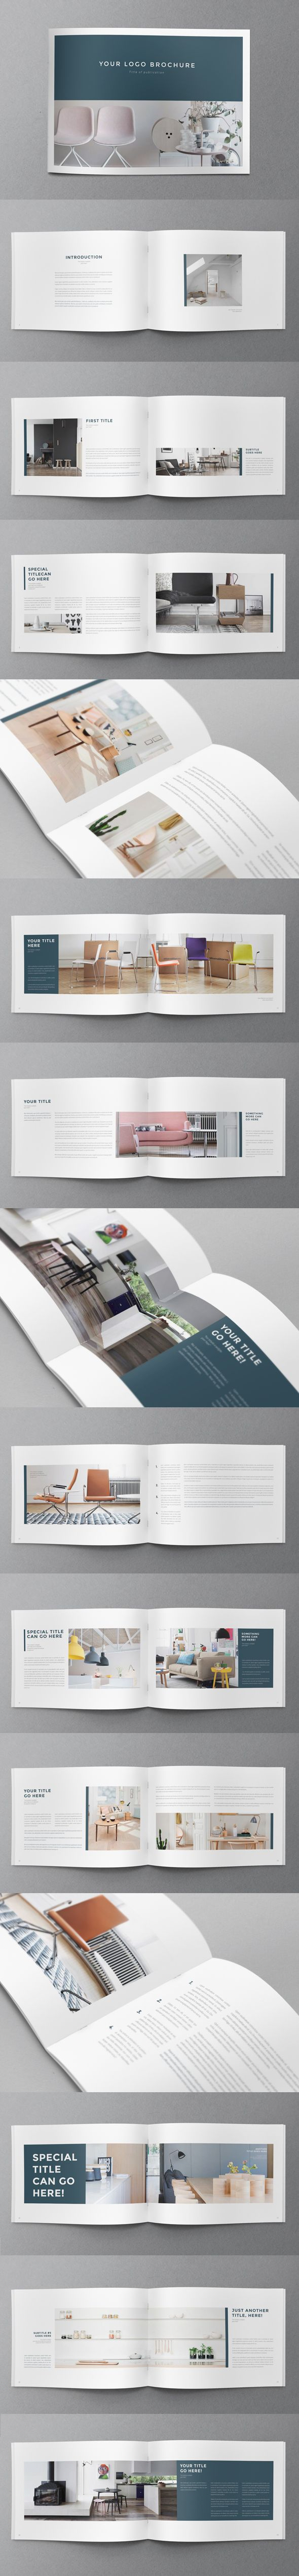 Interior Design Minimal Brochure on Behance